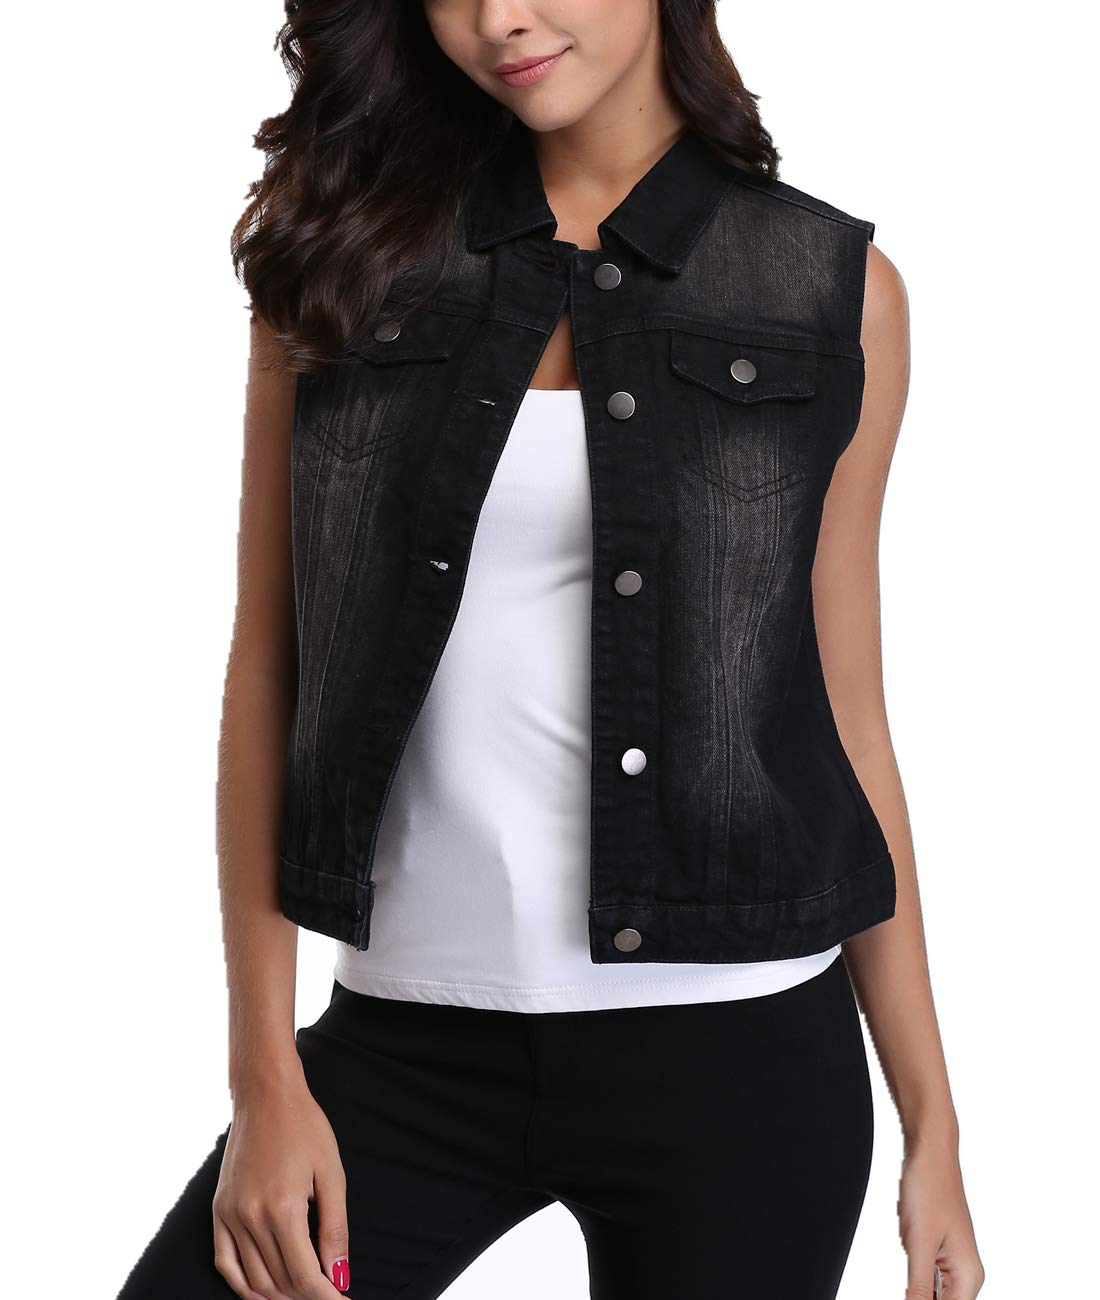 MISS MOLY Denim Vest for Women Buttoned Washed Cropped Jean Jacket w 2 Chest Flap Pockets